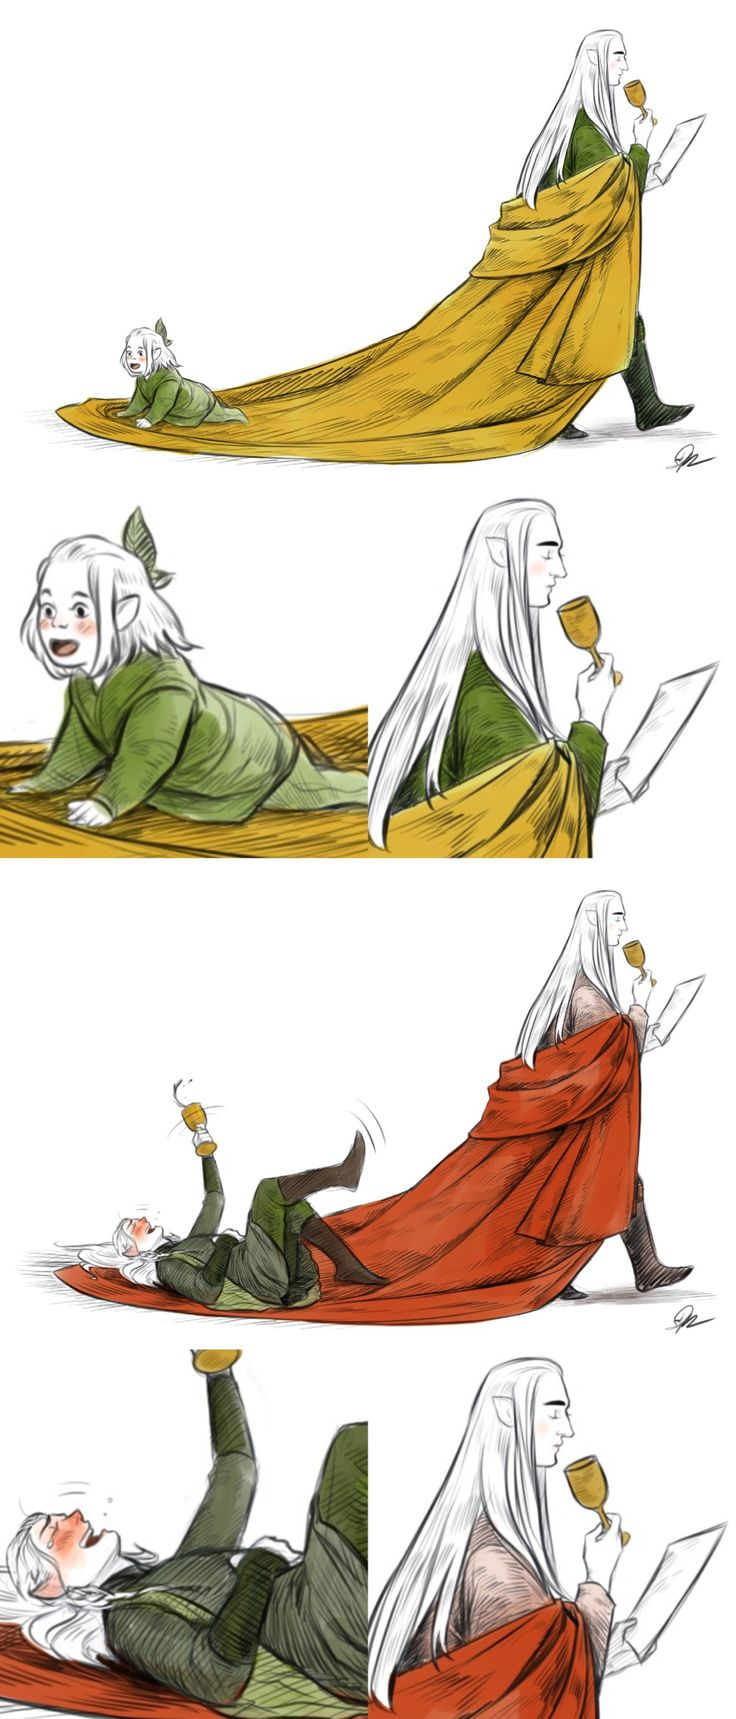 Legolas always loved riding the end of his father's robes as a little elfing~ Thranduil never minded and always felt quite amused by it… …even when Legolas was older and drunk. ;'3